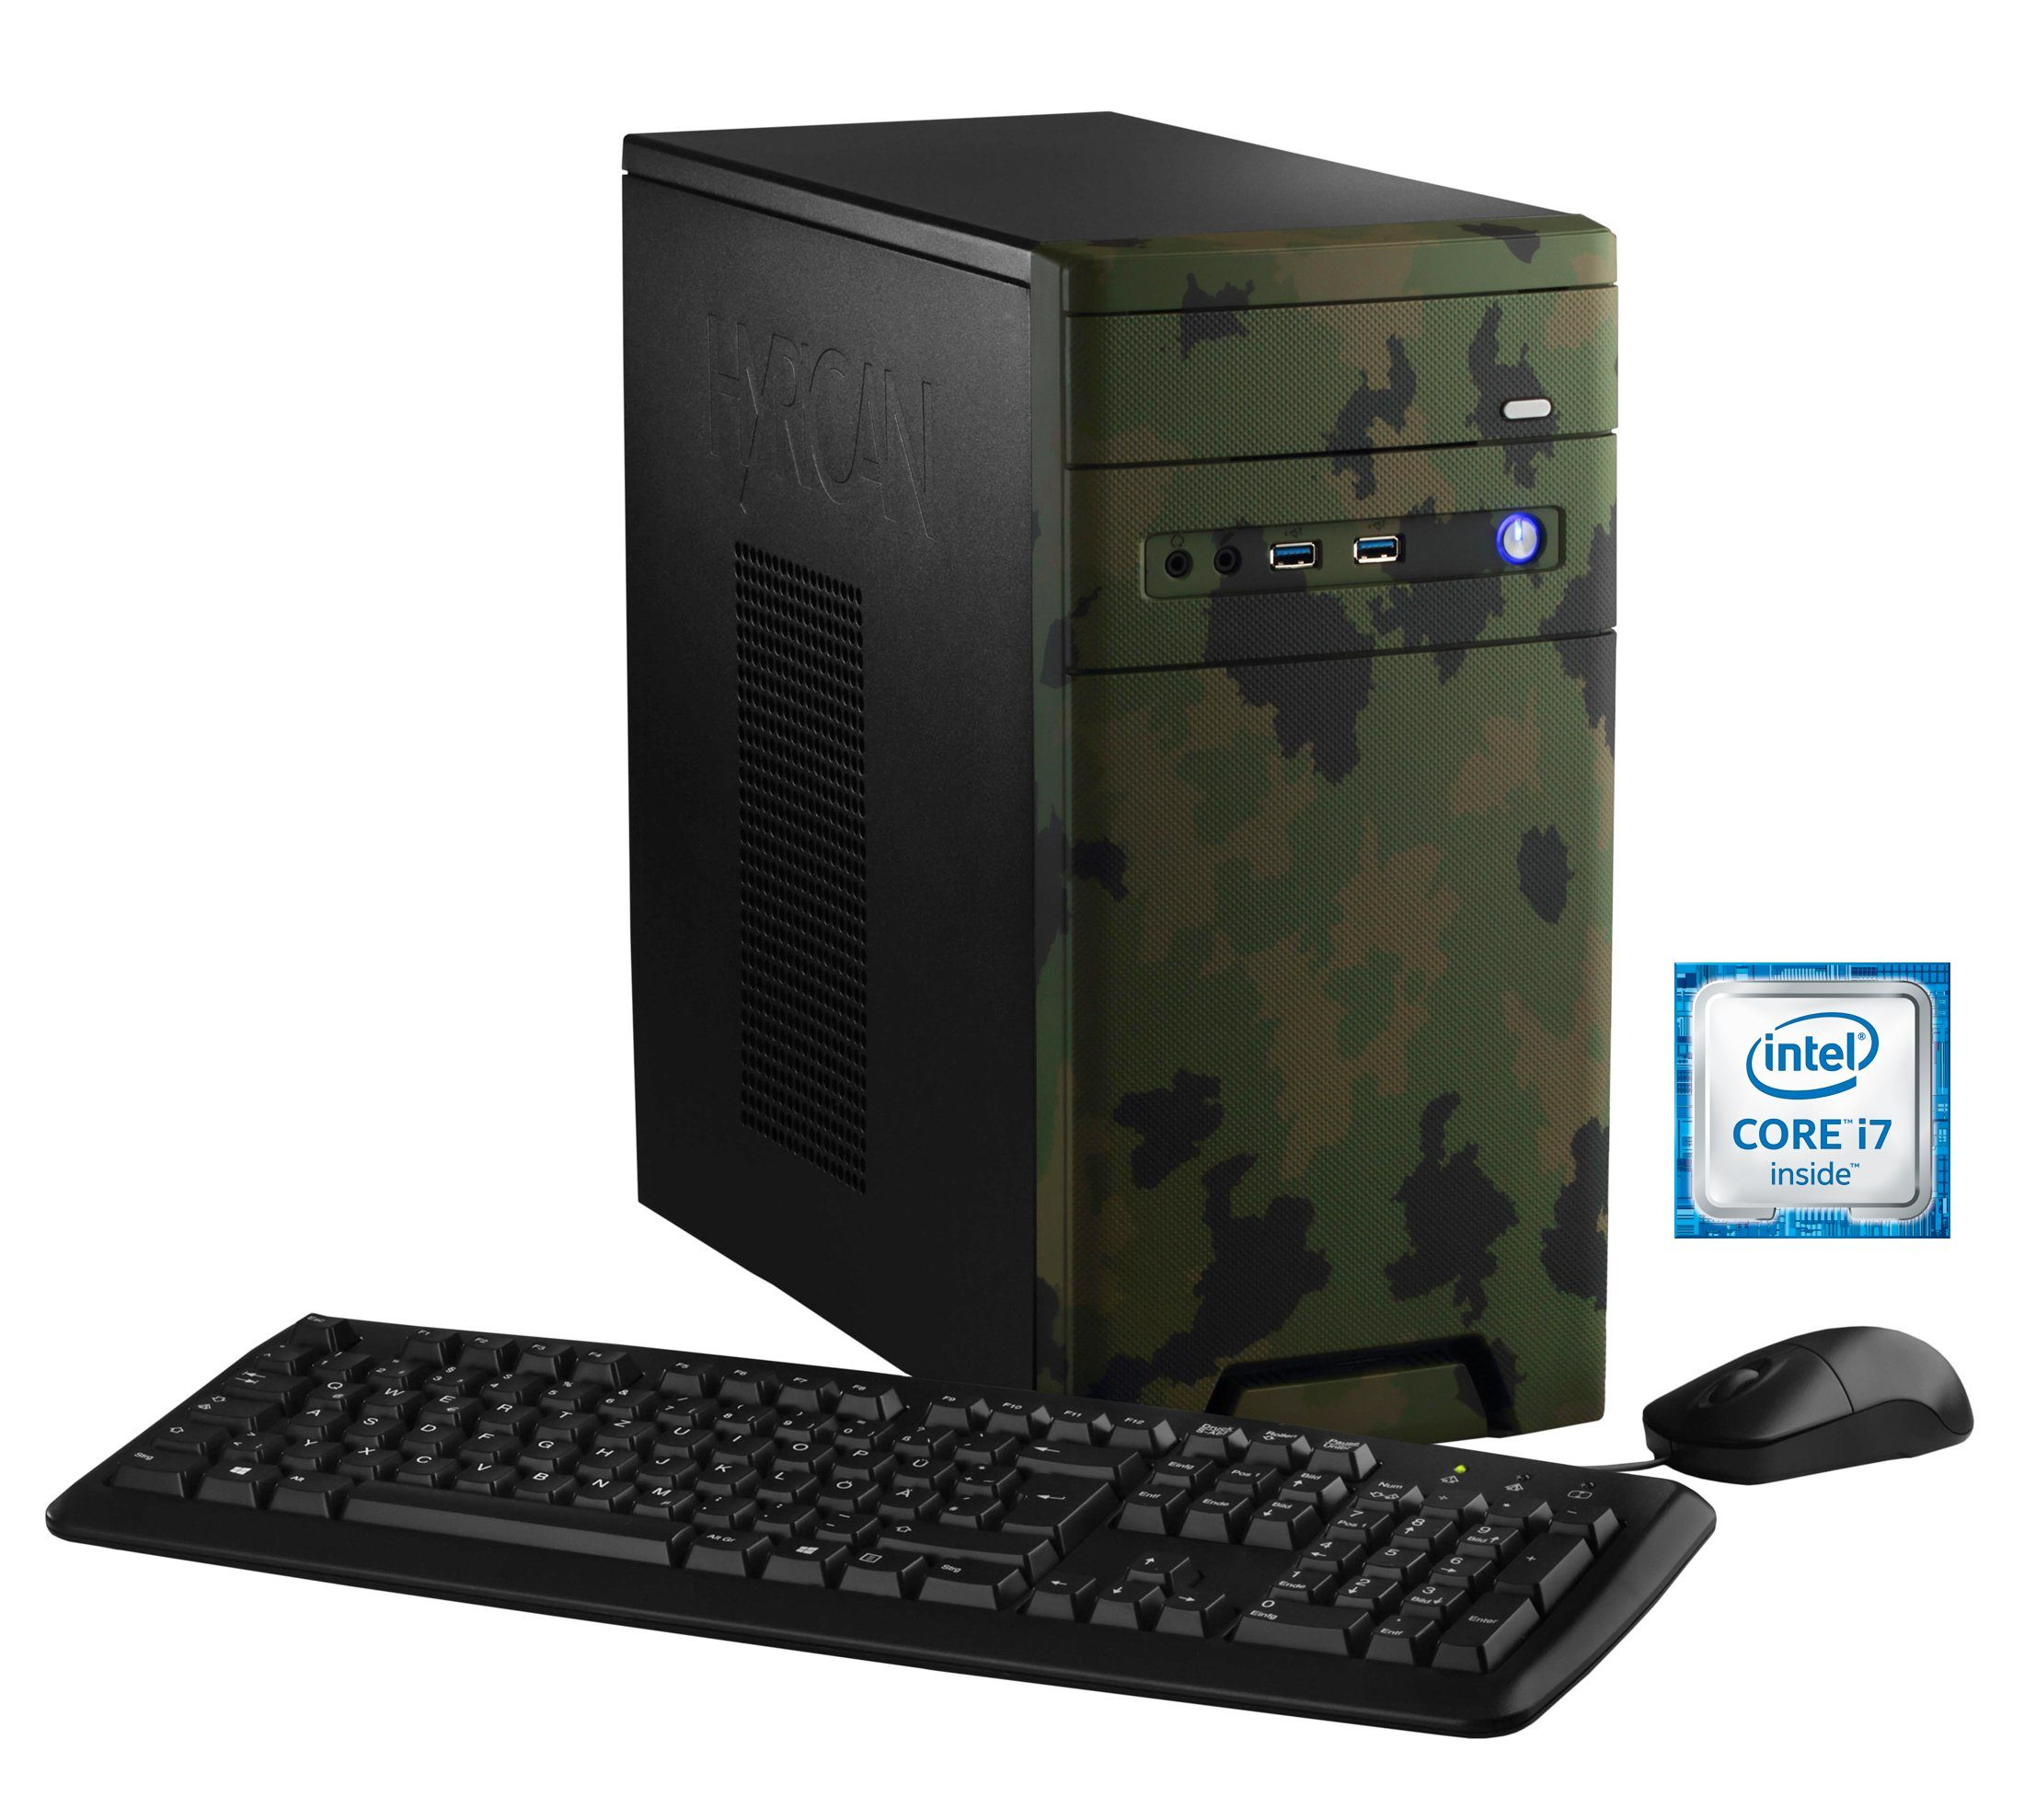 Hyrican Gaming PC Intel® i7-6700, 16GB, SSD + HDD, GeForce® GTX 1060 »CyberGamer forest 5369 «